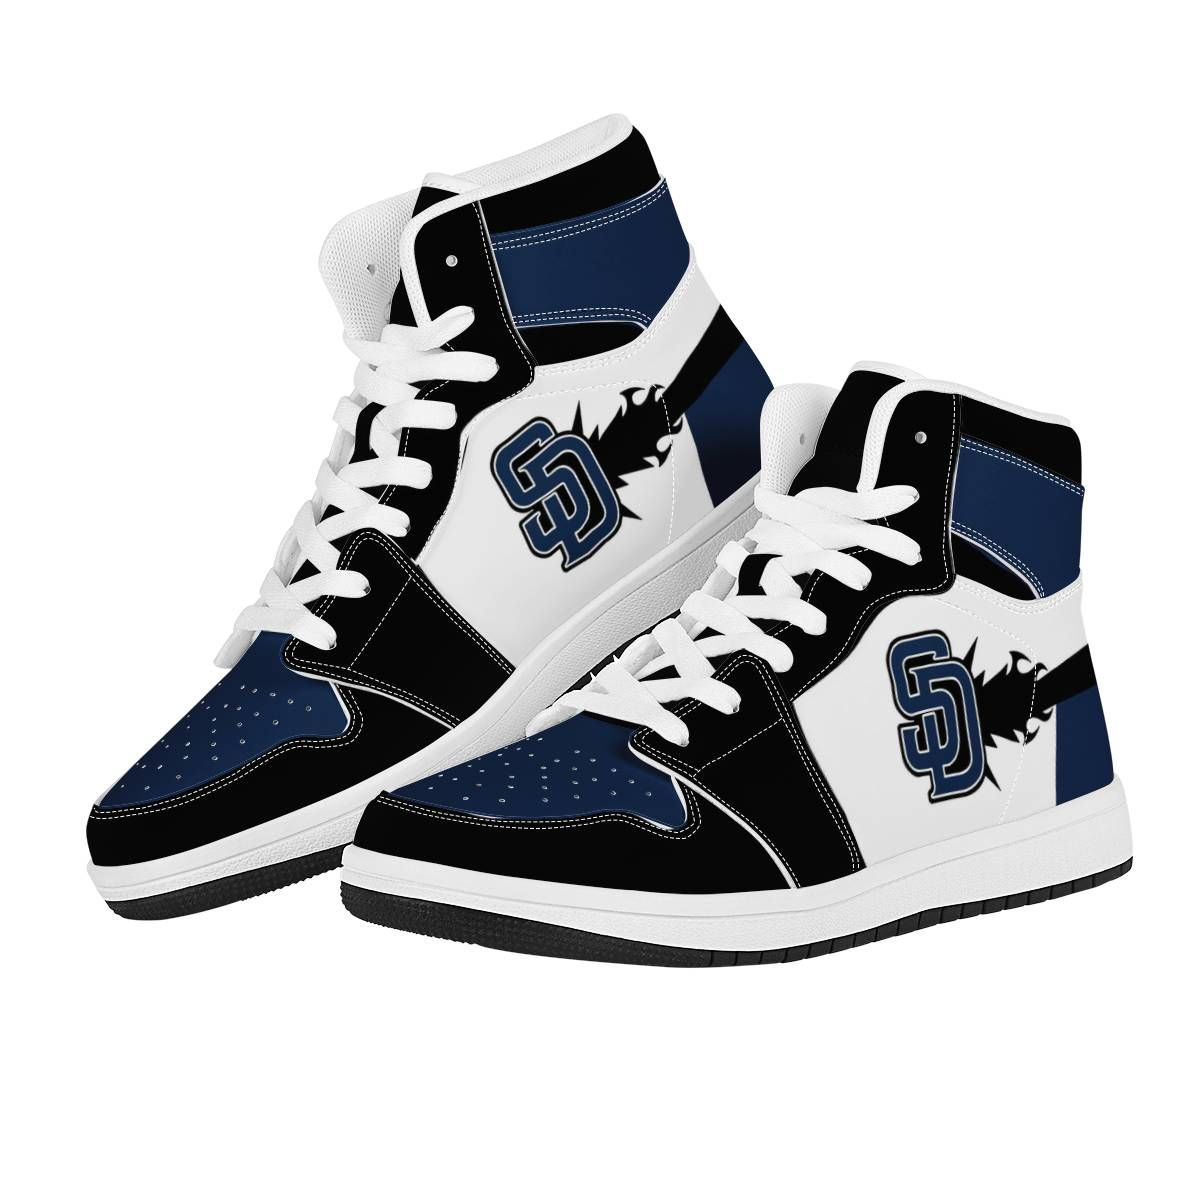 Women's San Diego Padres High Top Leather AJ1 Sneakers 001